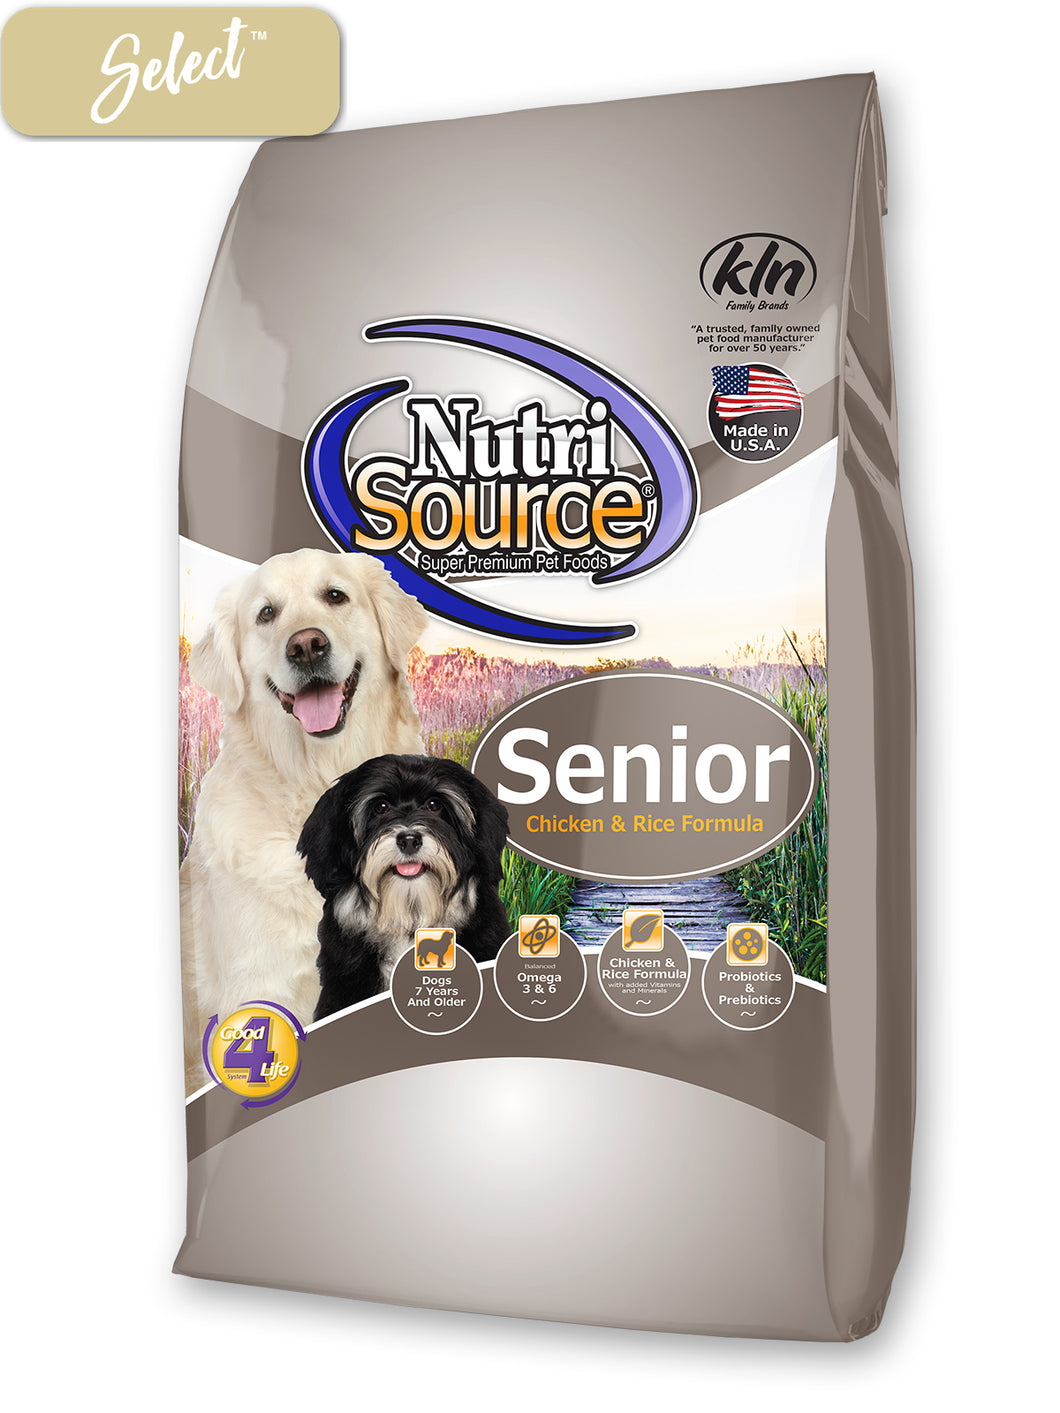 Nutrisource Senior Chicken and Rice Dog Food